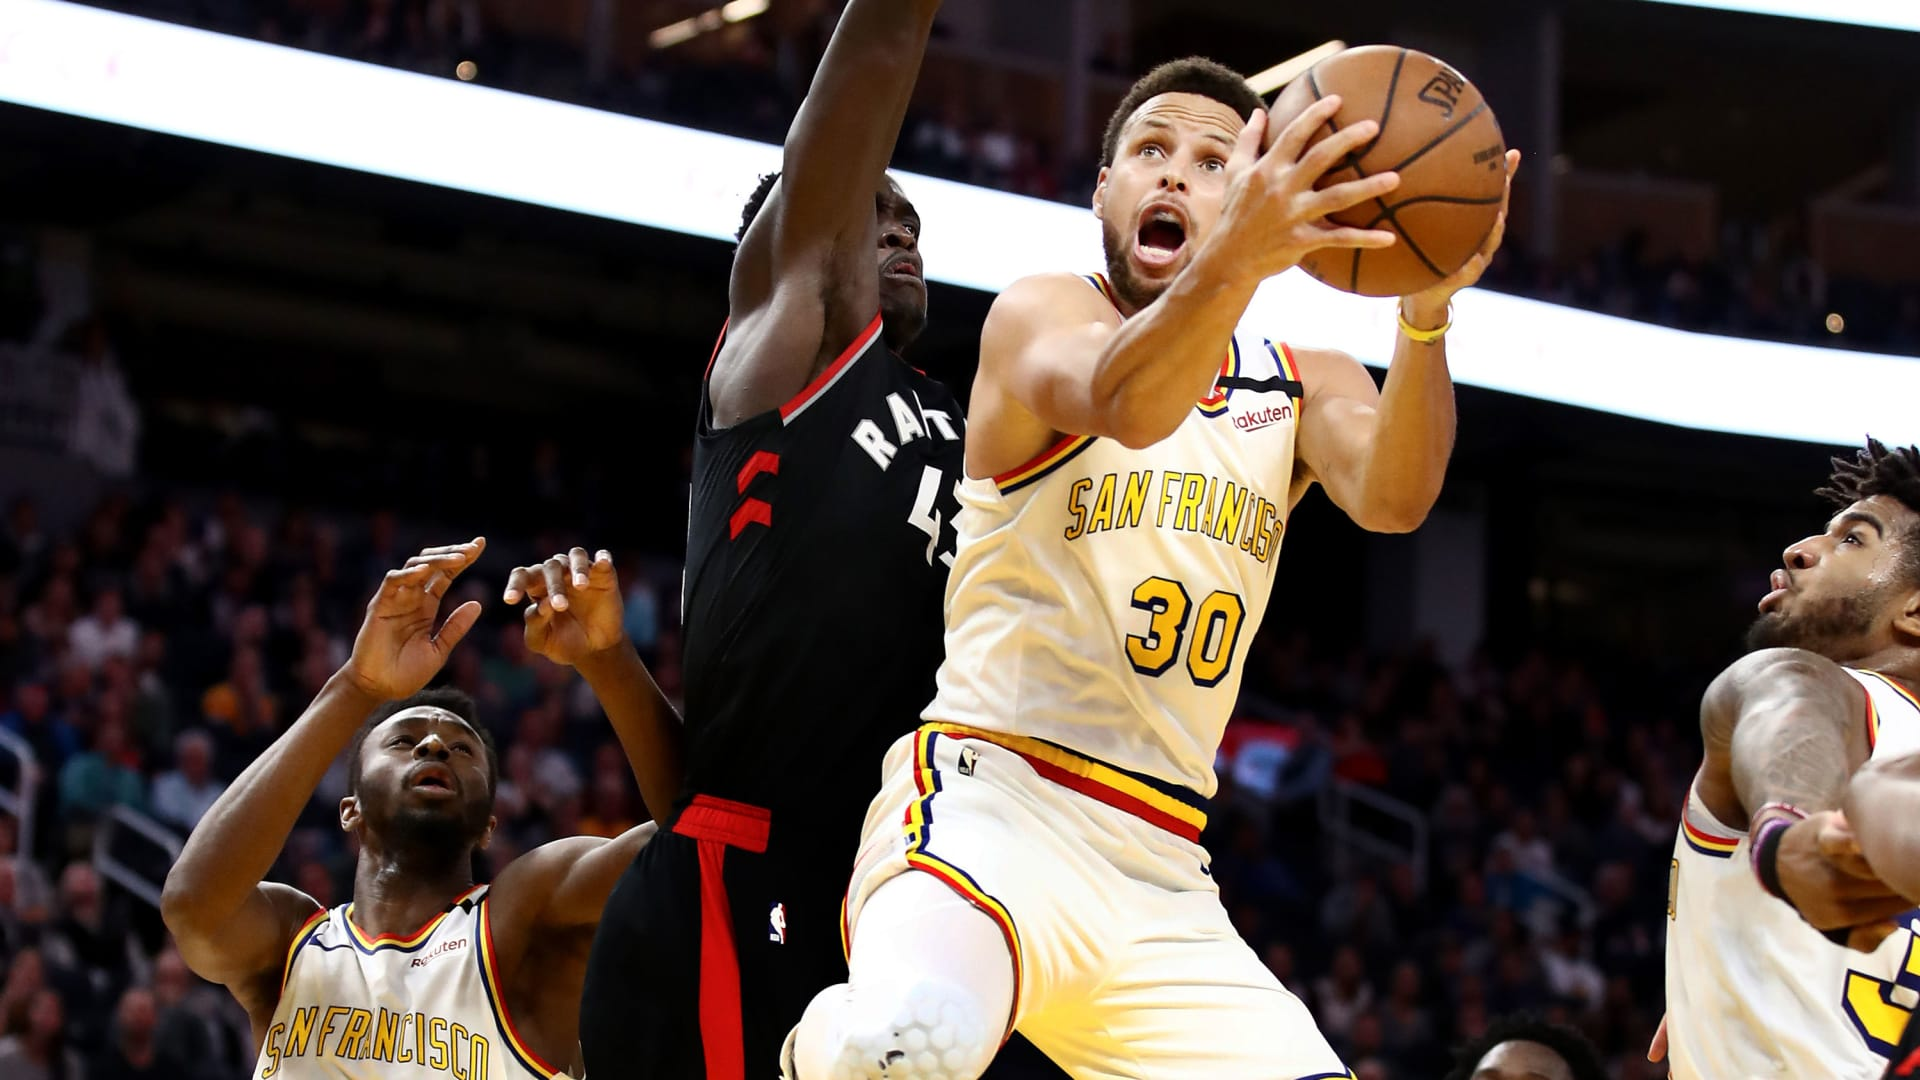 Stephen Curry #30 of the Golden State Warriors goes up for a shot on Pascal Siakam #43 of the Toronto Raptors at Chase Center on March 05, 2020 in San Francisco, California.